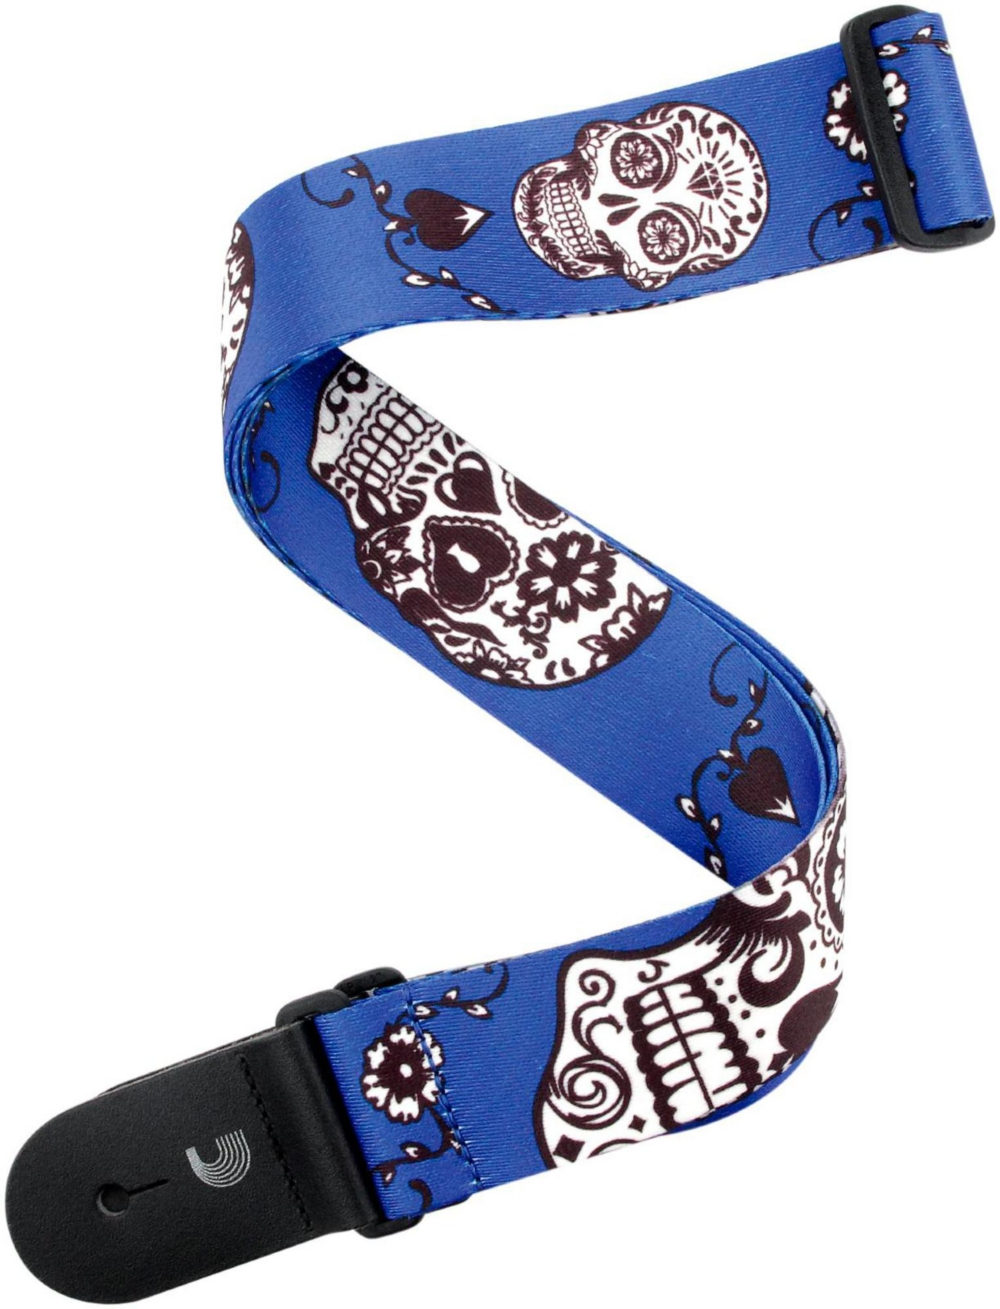 """D'Addario Planet Waves 2"""" Polyester Guitar Strap, Sugar Skulls, by D'Addario Blue by D'Addario Planet Waves"""